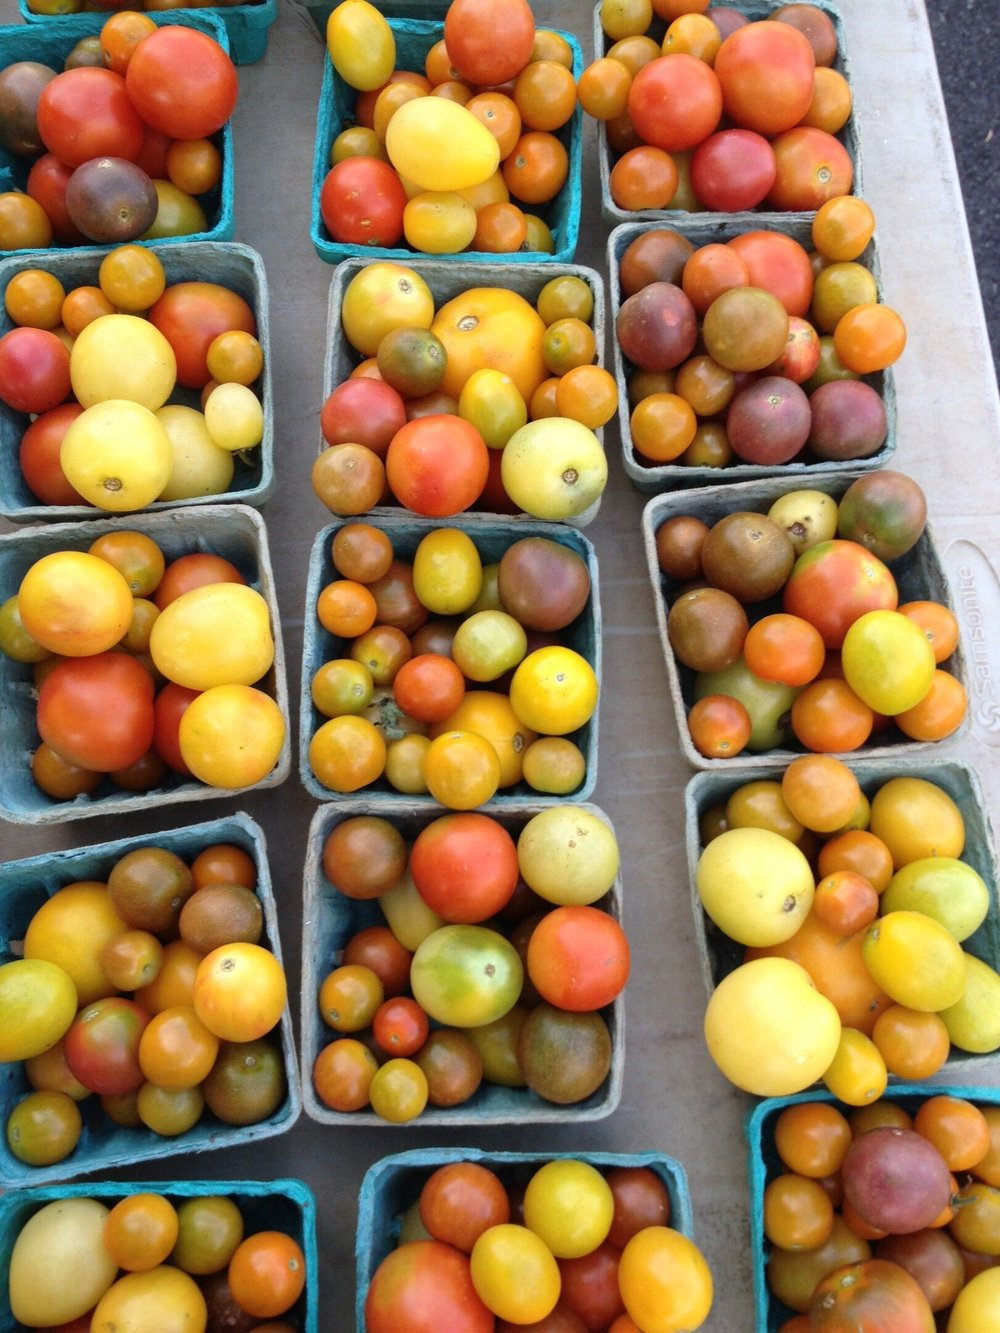 Tomatoes-in-boxes-Maryland-CSA.jpg